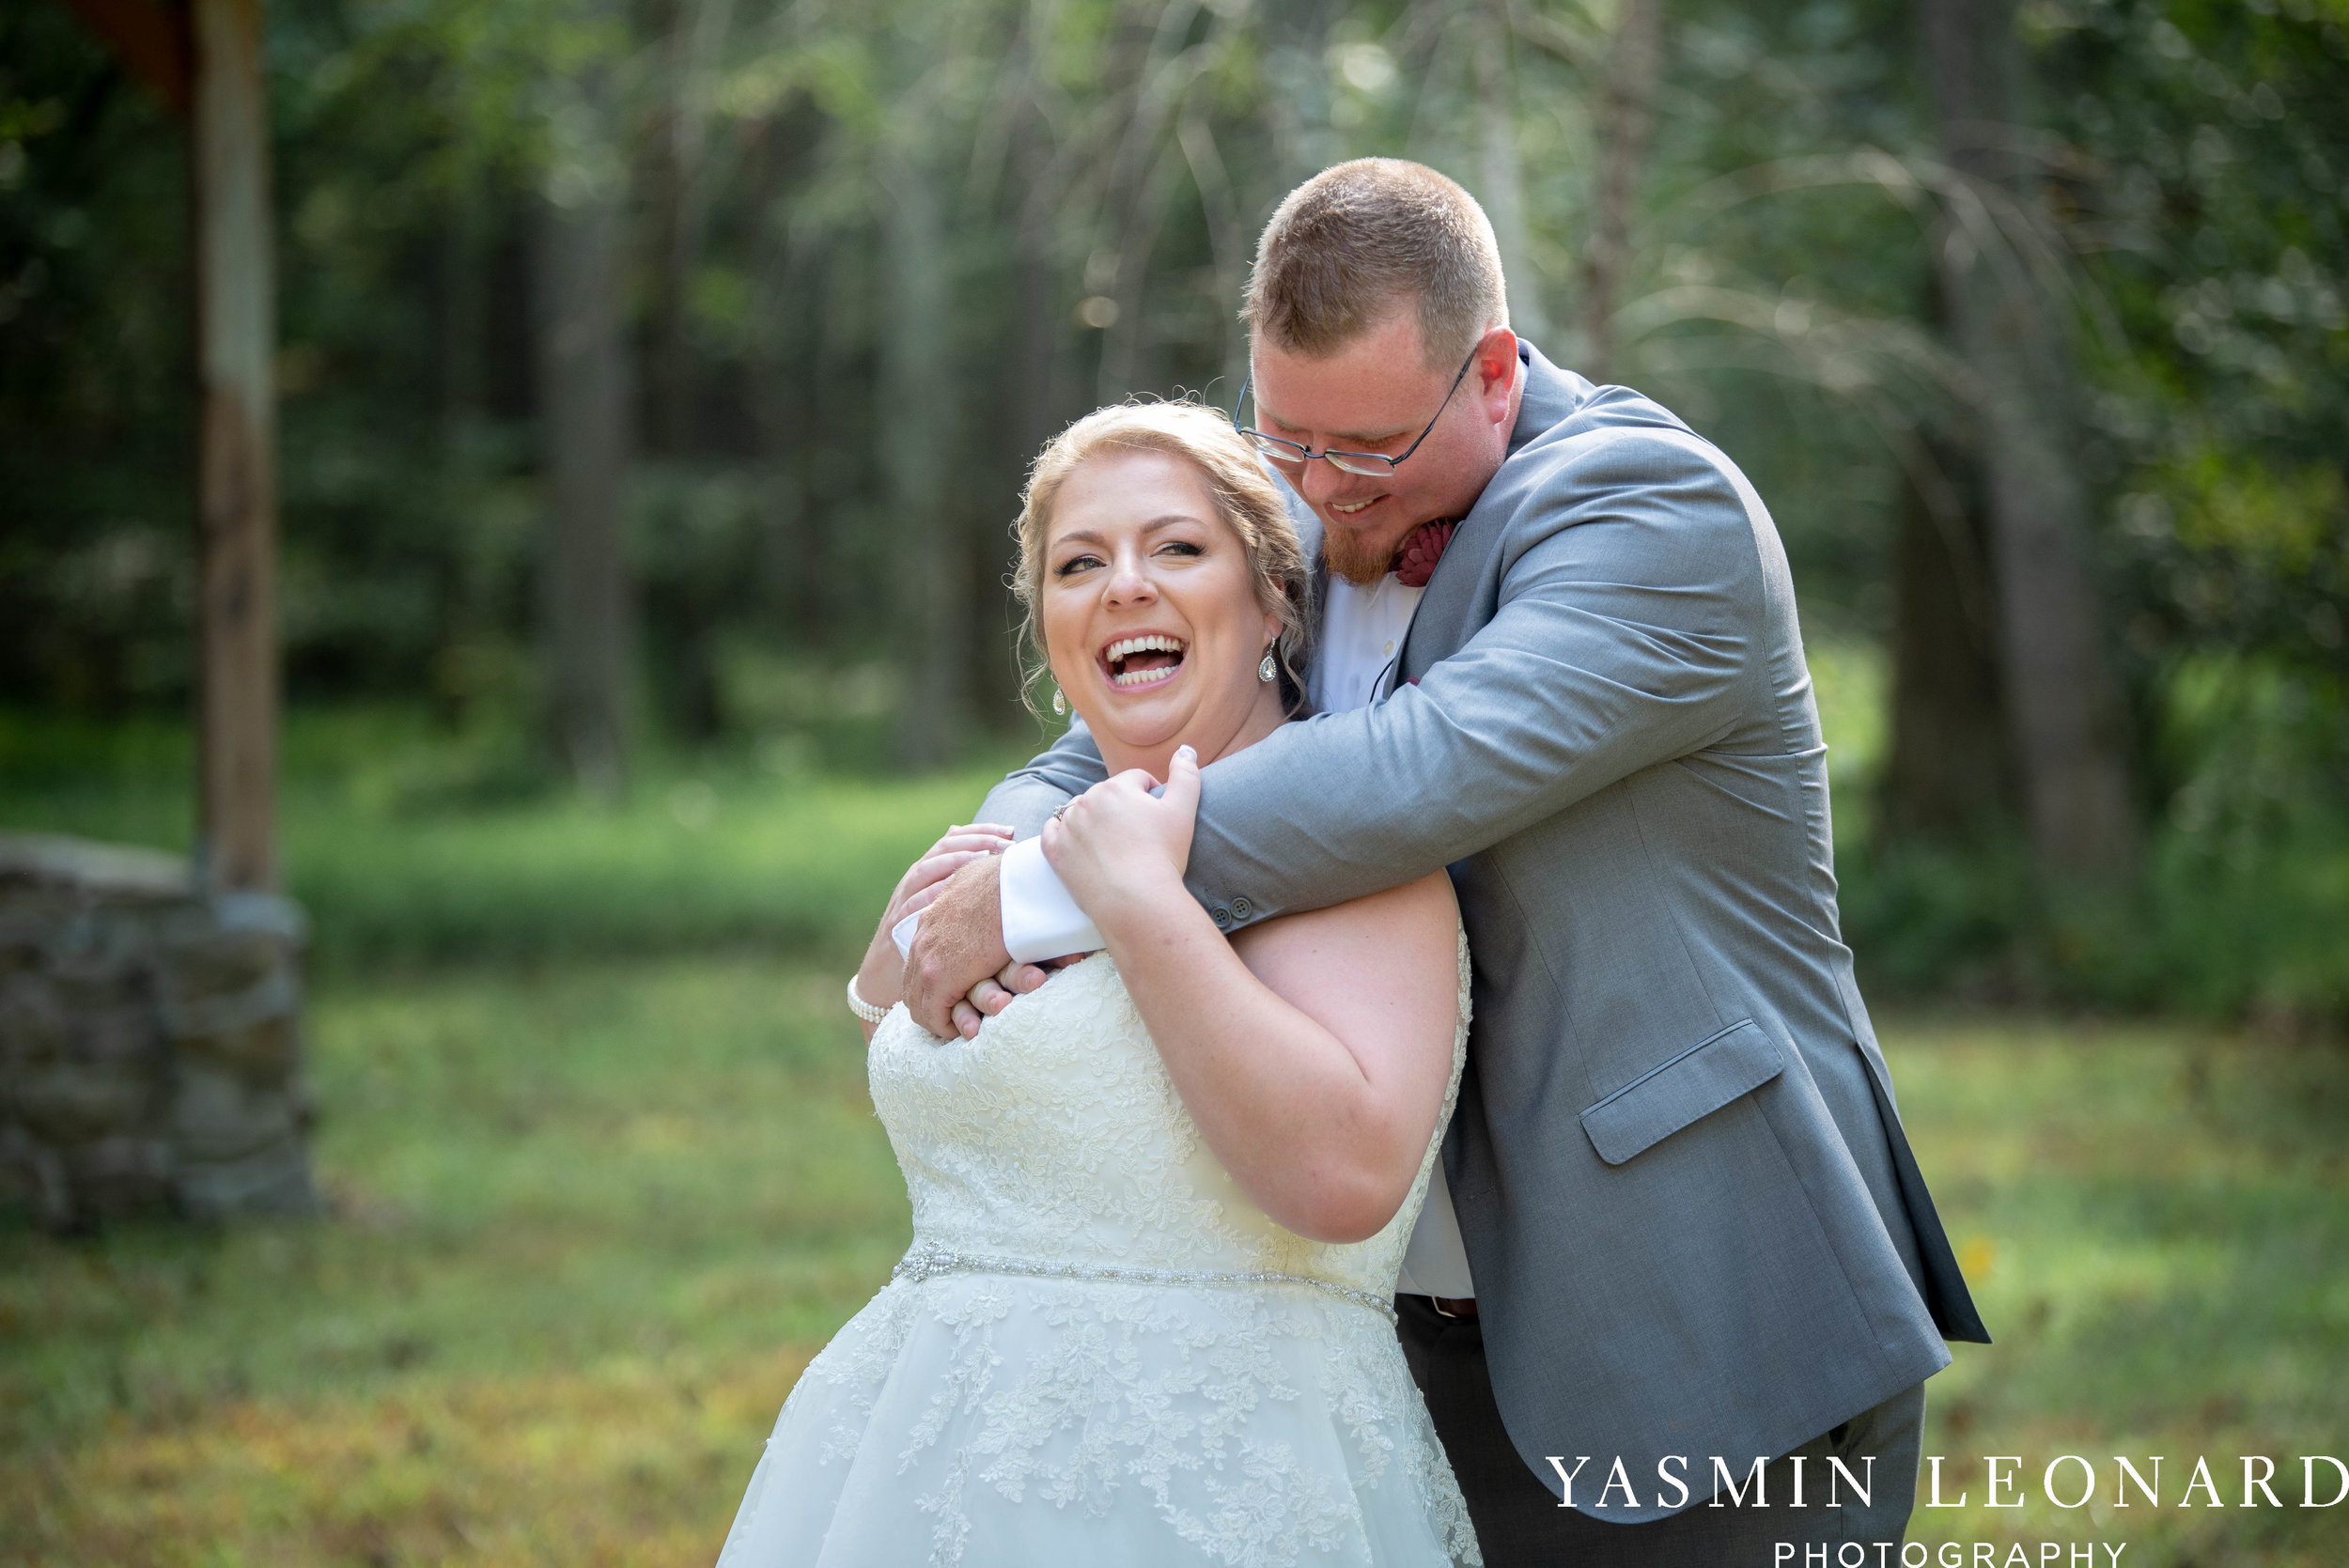 Danner Farms - NC Wedding Venues - NC Barns - Statesville NC - NC Wedding Photographer - High Point Wedding Photographer - Yasmin Leonard Photography-17.jpg